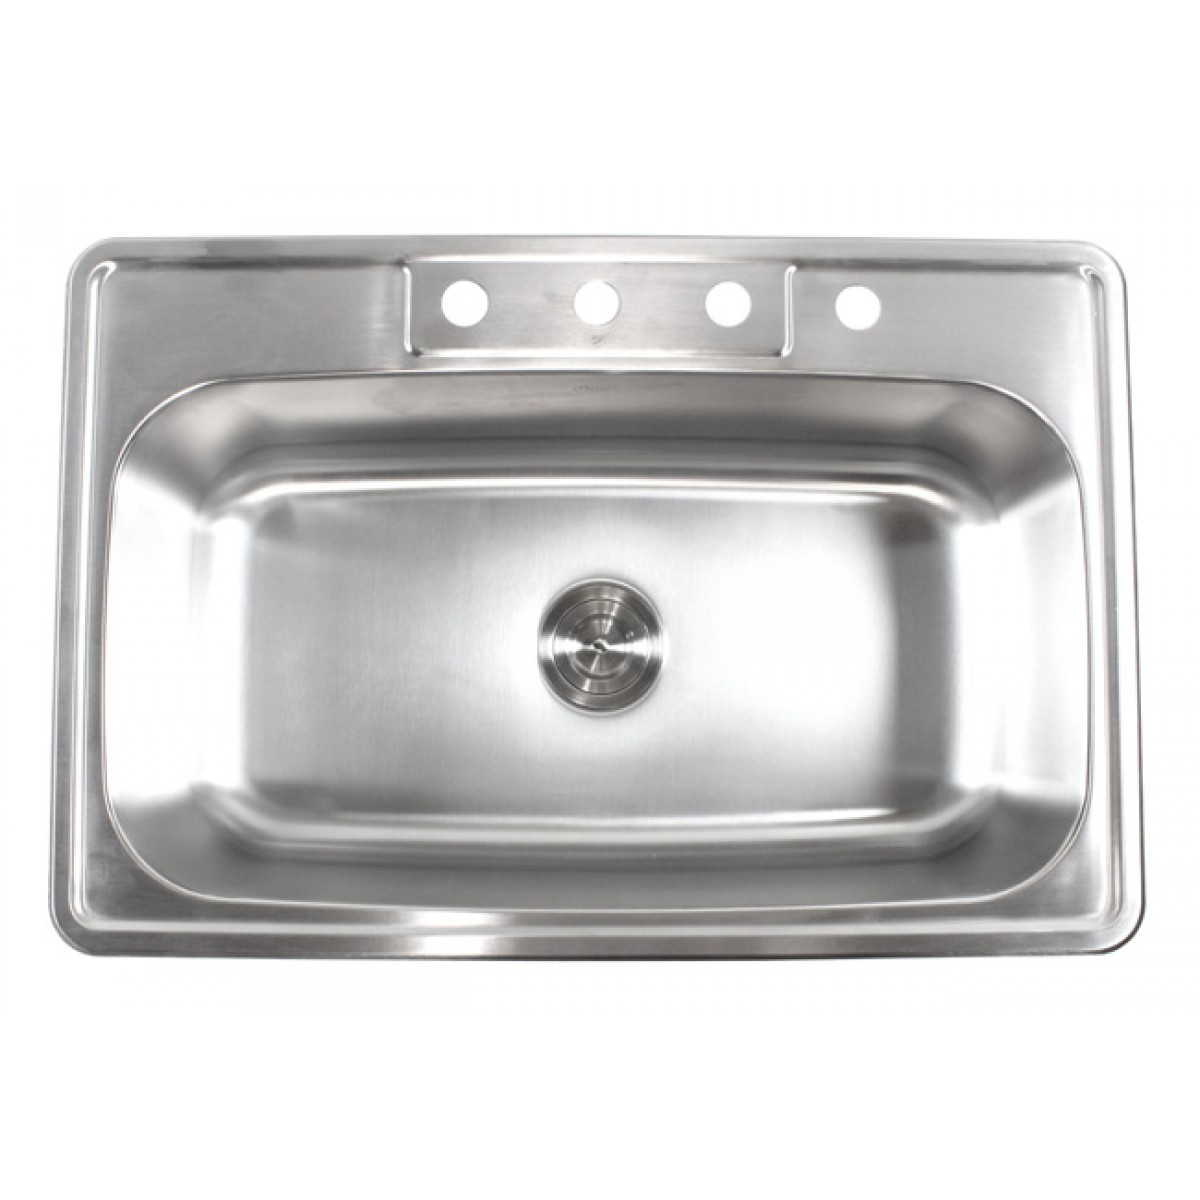 single bowl kitchen sink top mount 33 inch stainless steel top mount drop in single bowl 9305